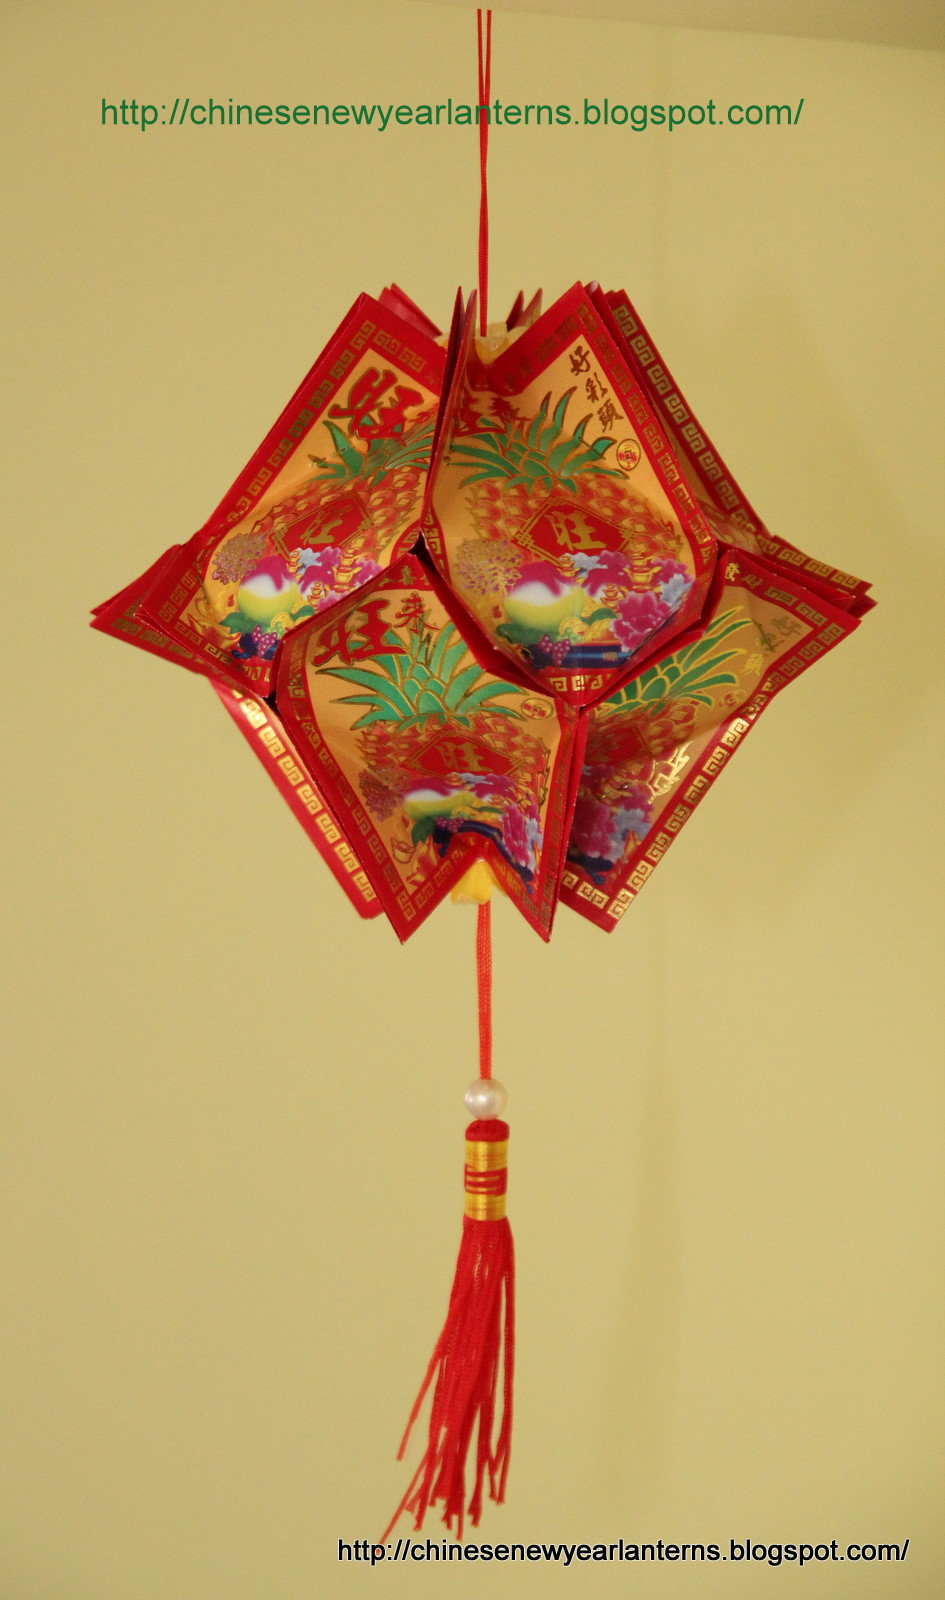 Chinese new year lanterns january 2012 for Ang pow packet decoration